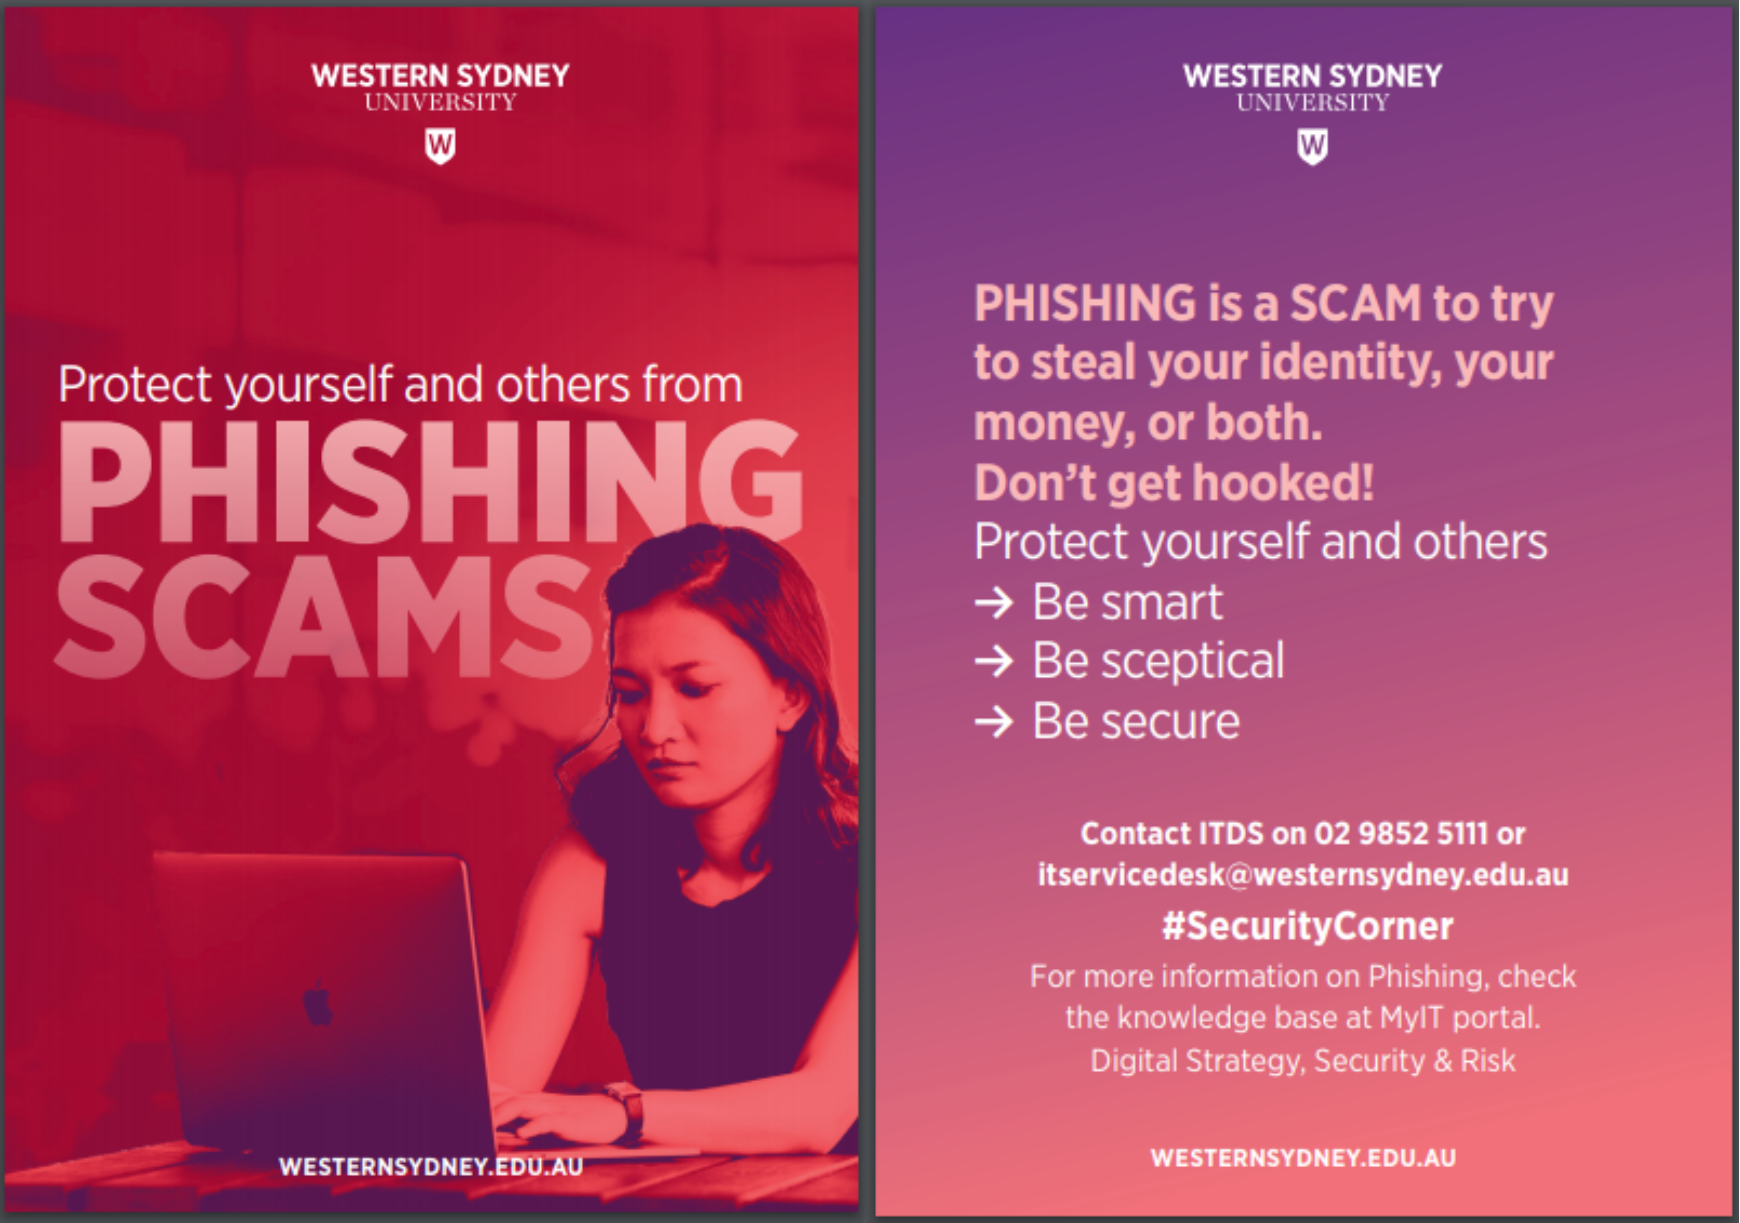 Phishing Scams awareness postcard